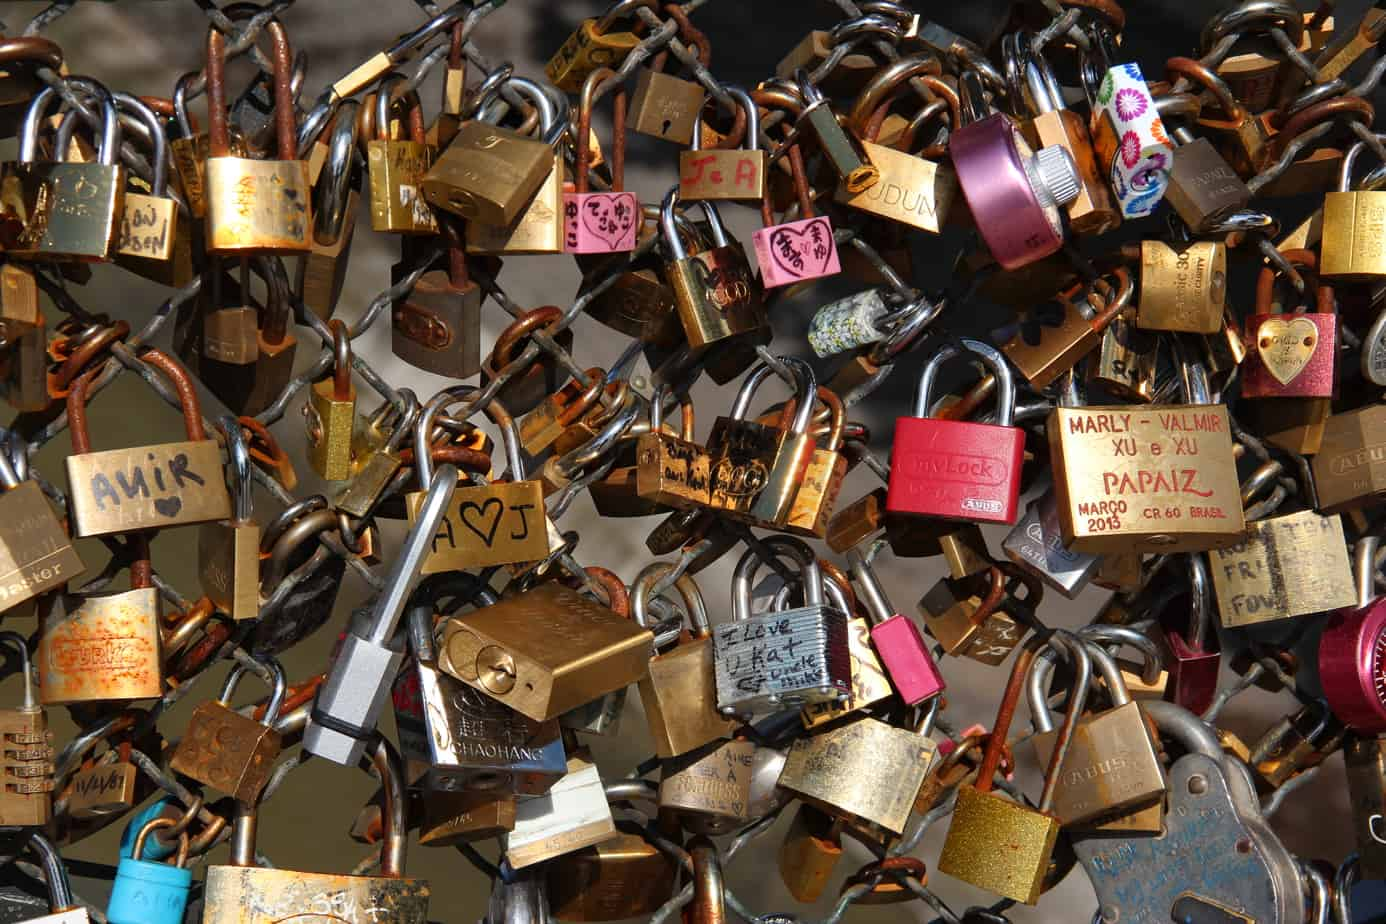 Lock for lovers on Paris bridge